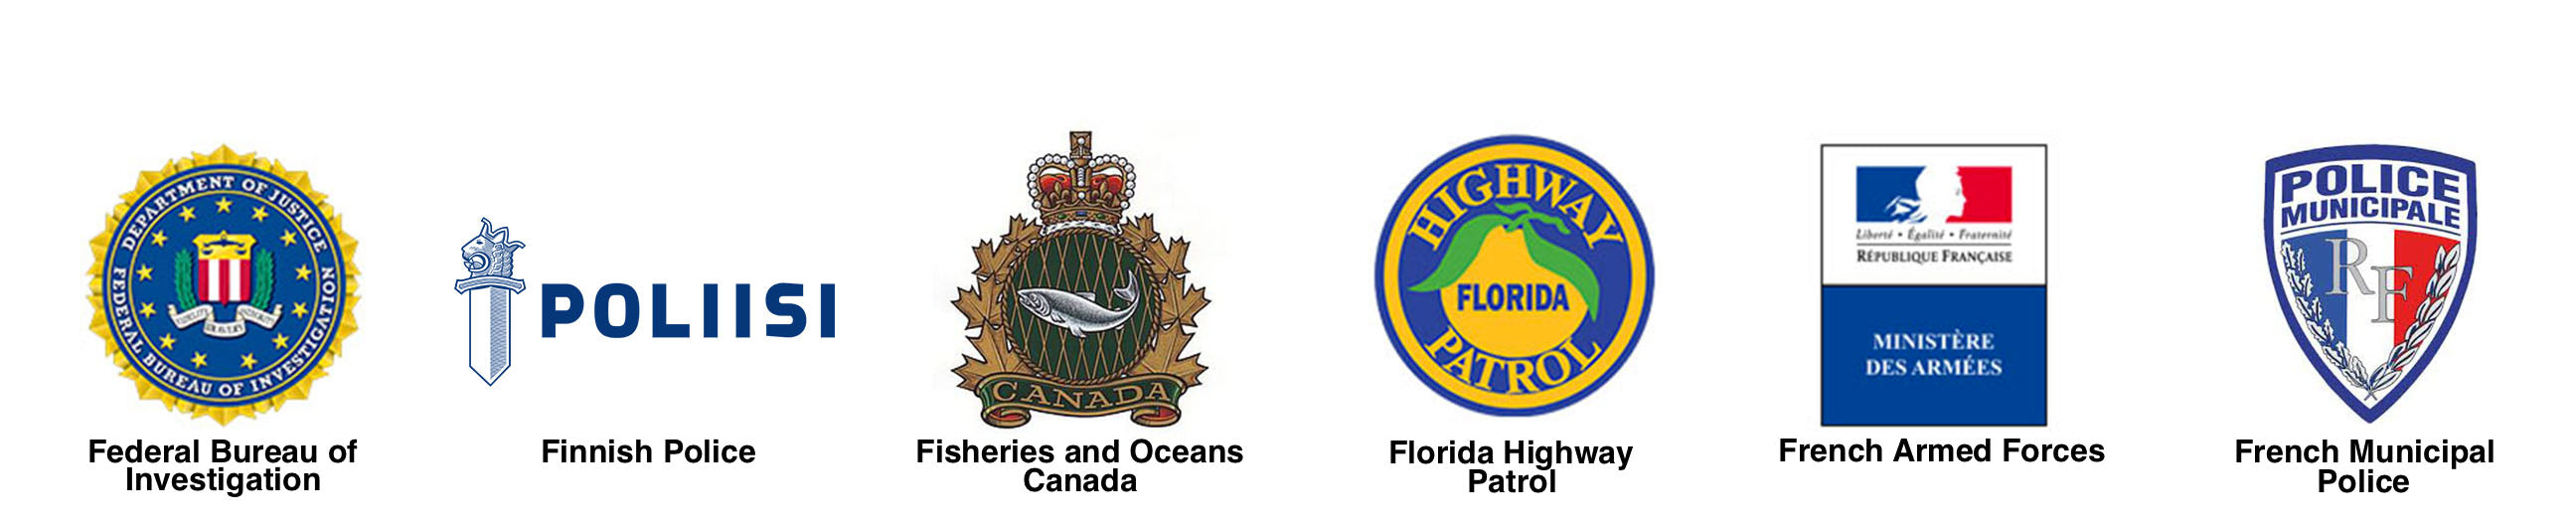 FBI, Finnish Police, Fisheries and Oceans Canada, Florida Highway Patrol, French Armed Forces, French Municipal Police